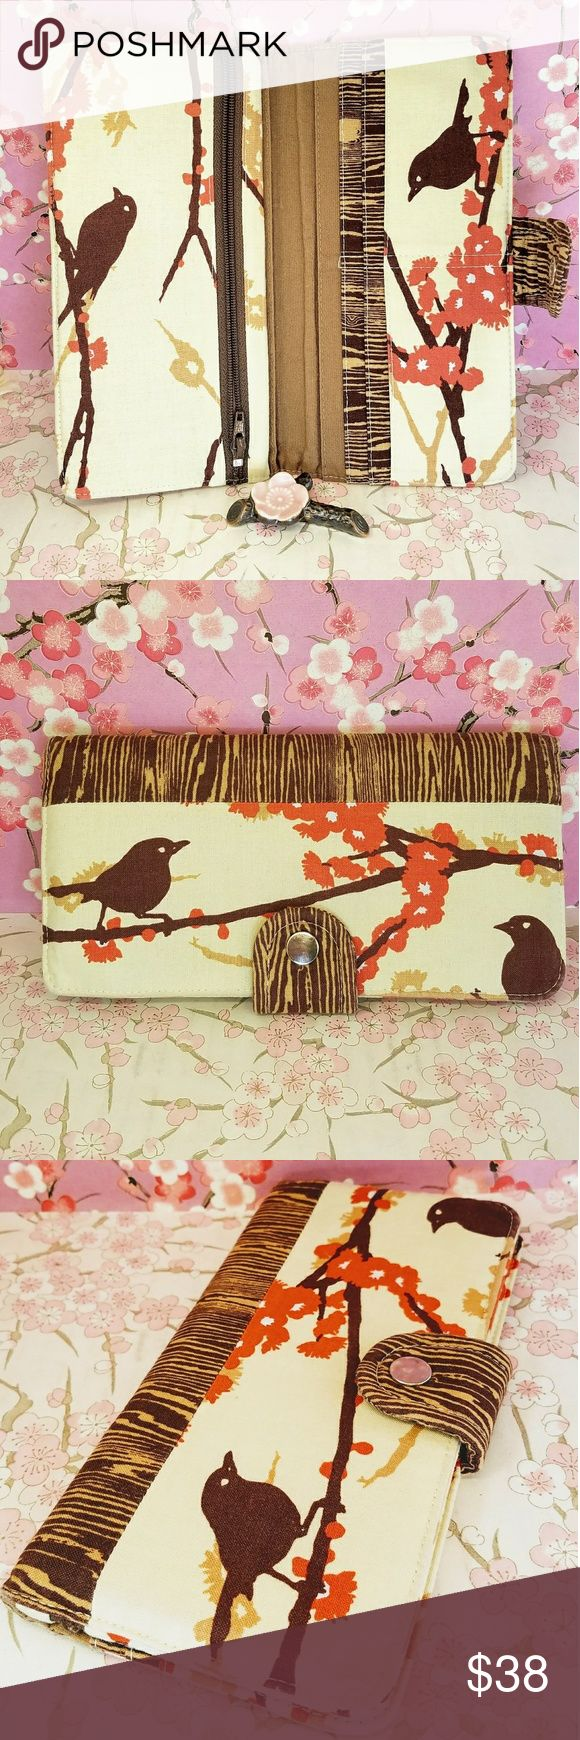 """Cotton Purr bird log orange beige brown wallet Beautiful hand made Cotton Purr bird log orange beige brown wallet. 1 interior zipper pocket on side. 9 interior pockets. Made if cotton. Bird on orange cherry bloss branch design design. Very slim fits in most purses. Size 7.9""""x4"""". Gently used condition. Machine washable. Cotton Purr Bags Wallets"""